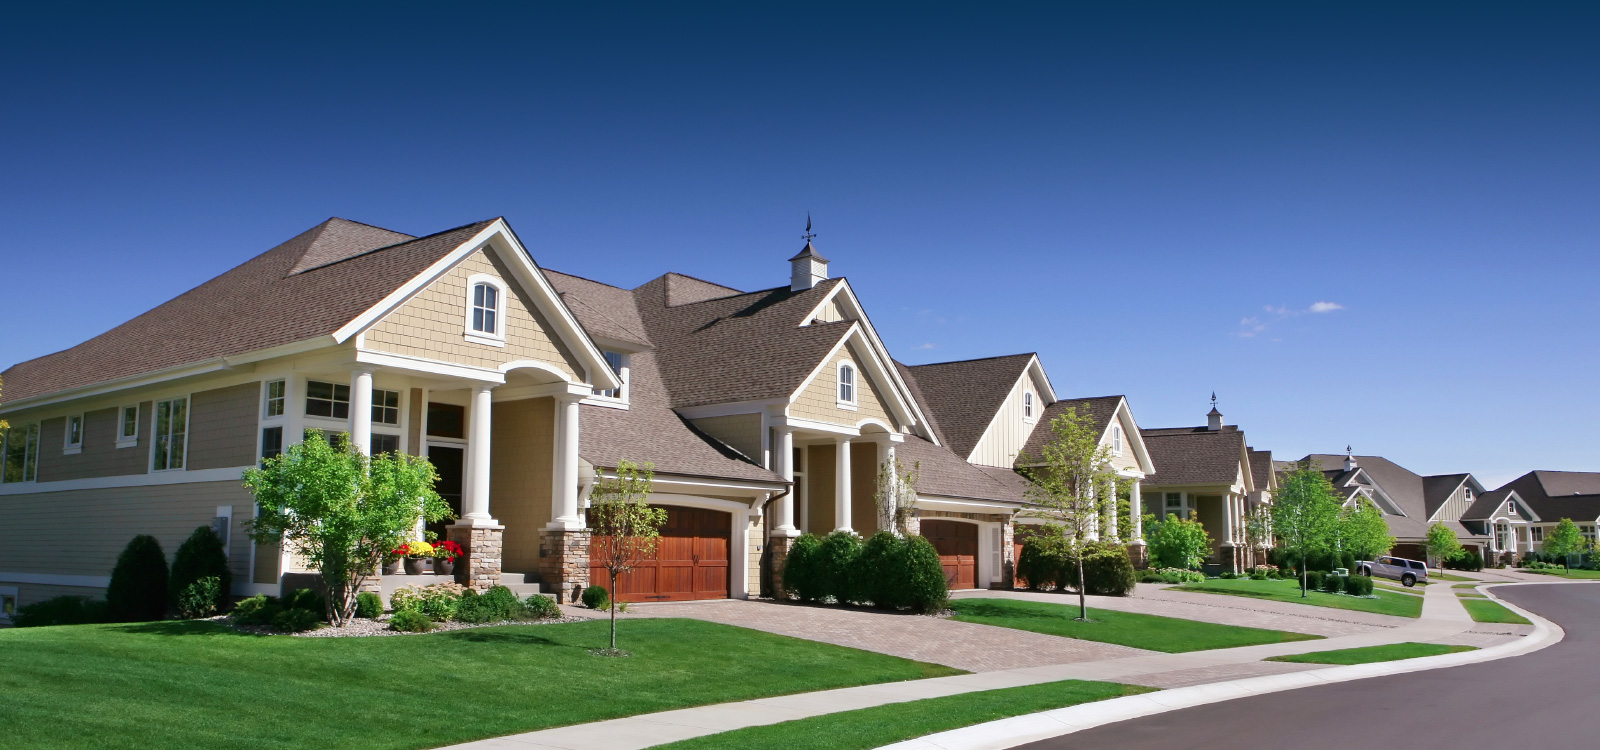 Home Inspection Checklist St Charles